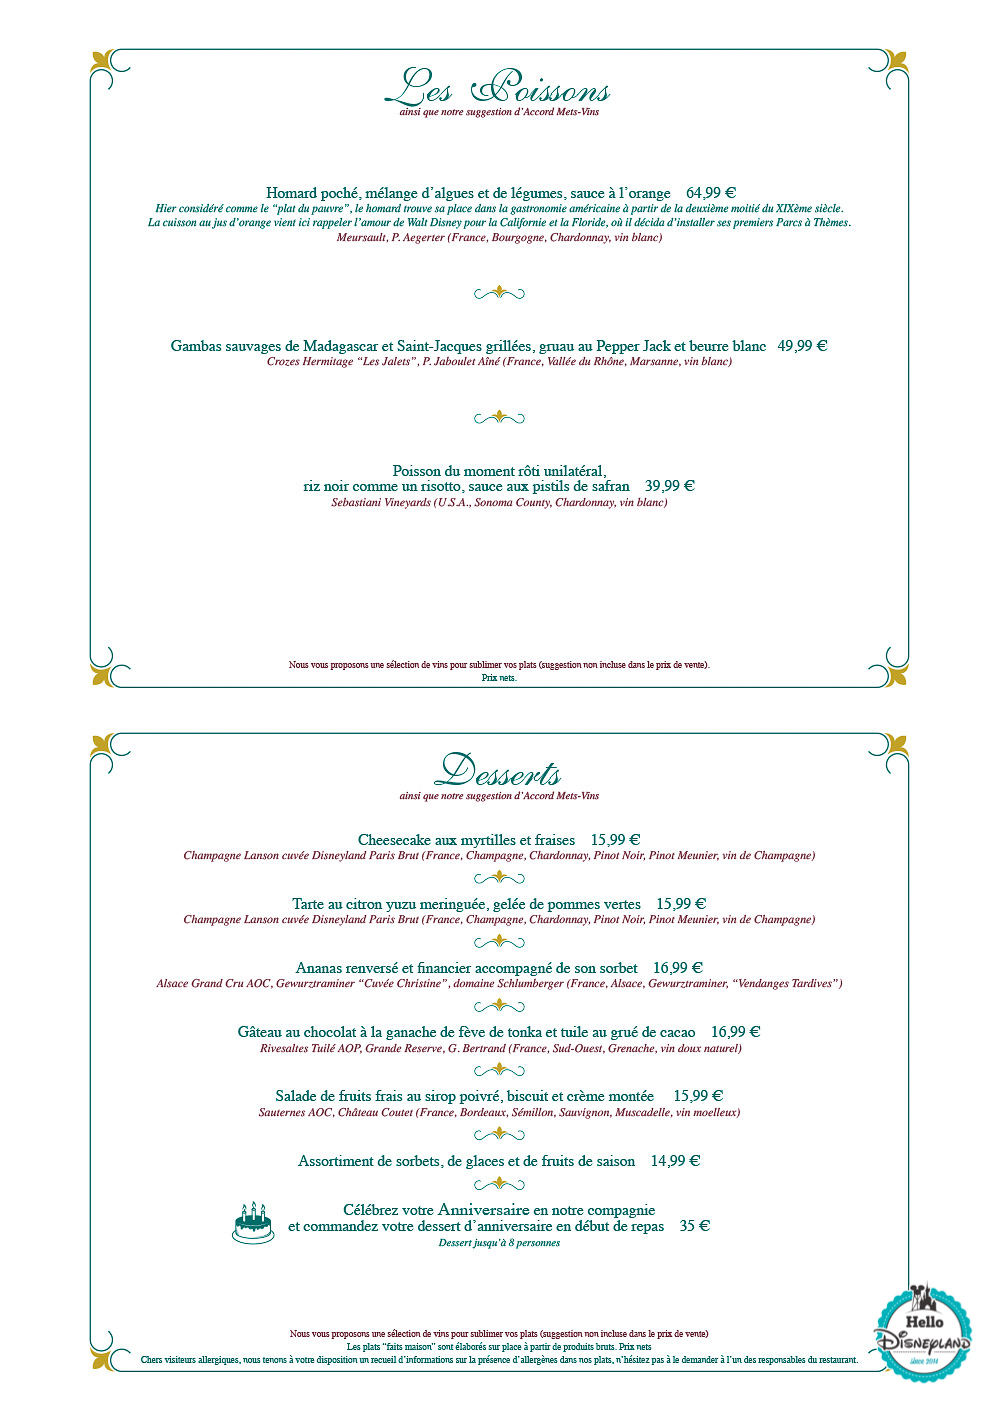 Menus restWalt's – an American Restaurantaurants Disneyland Paris